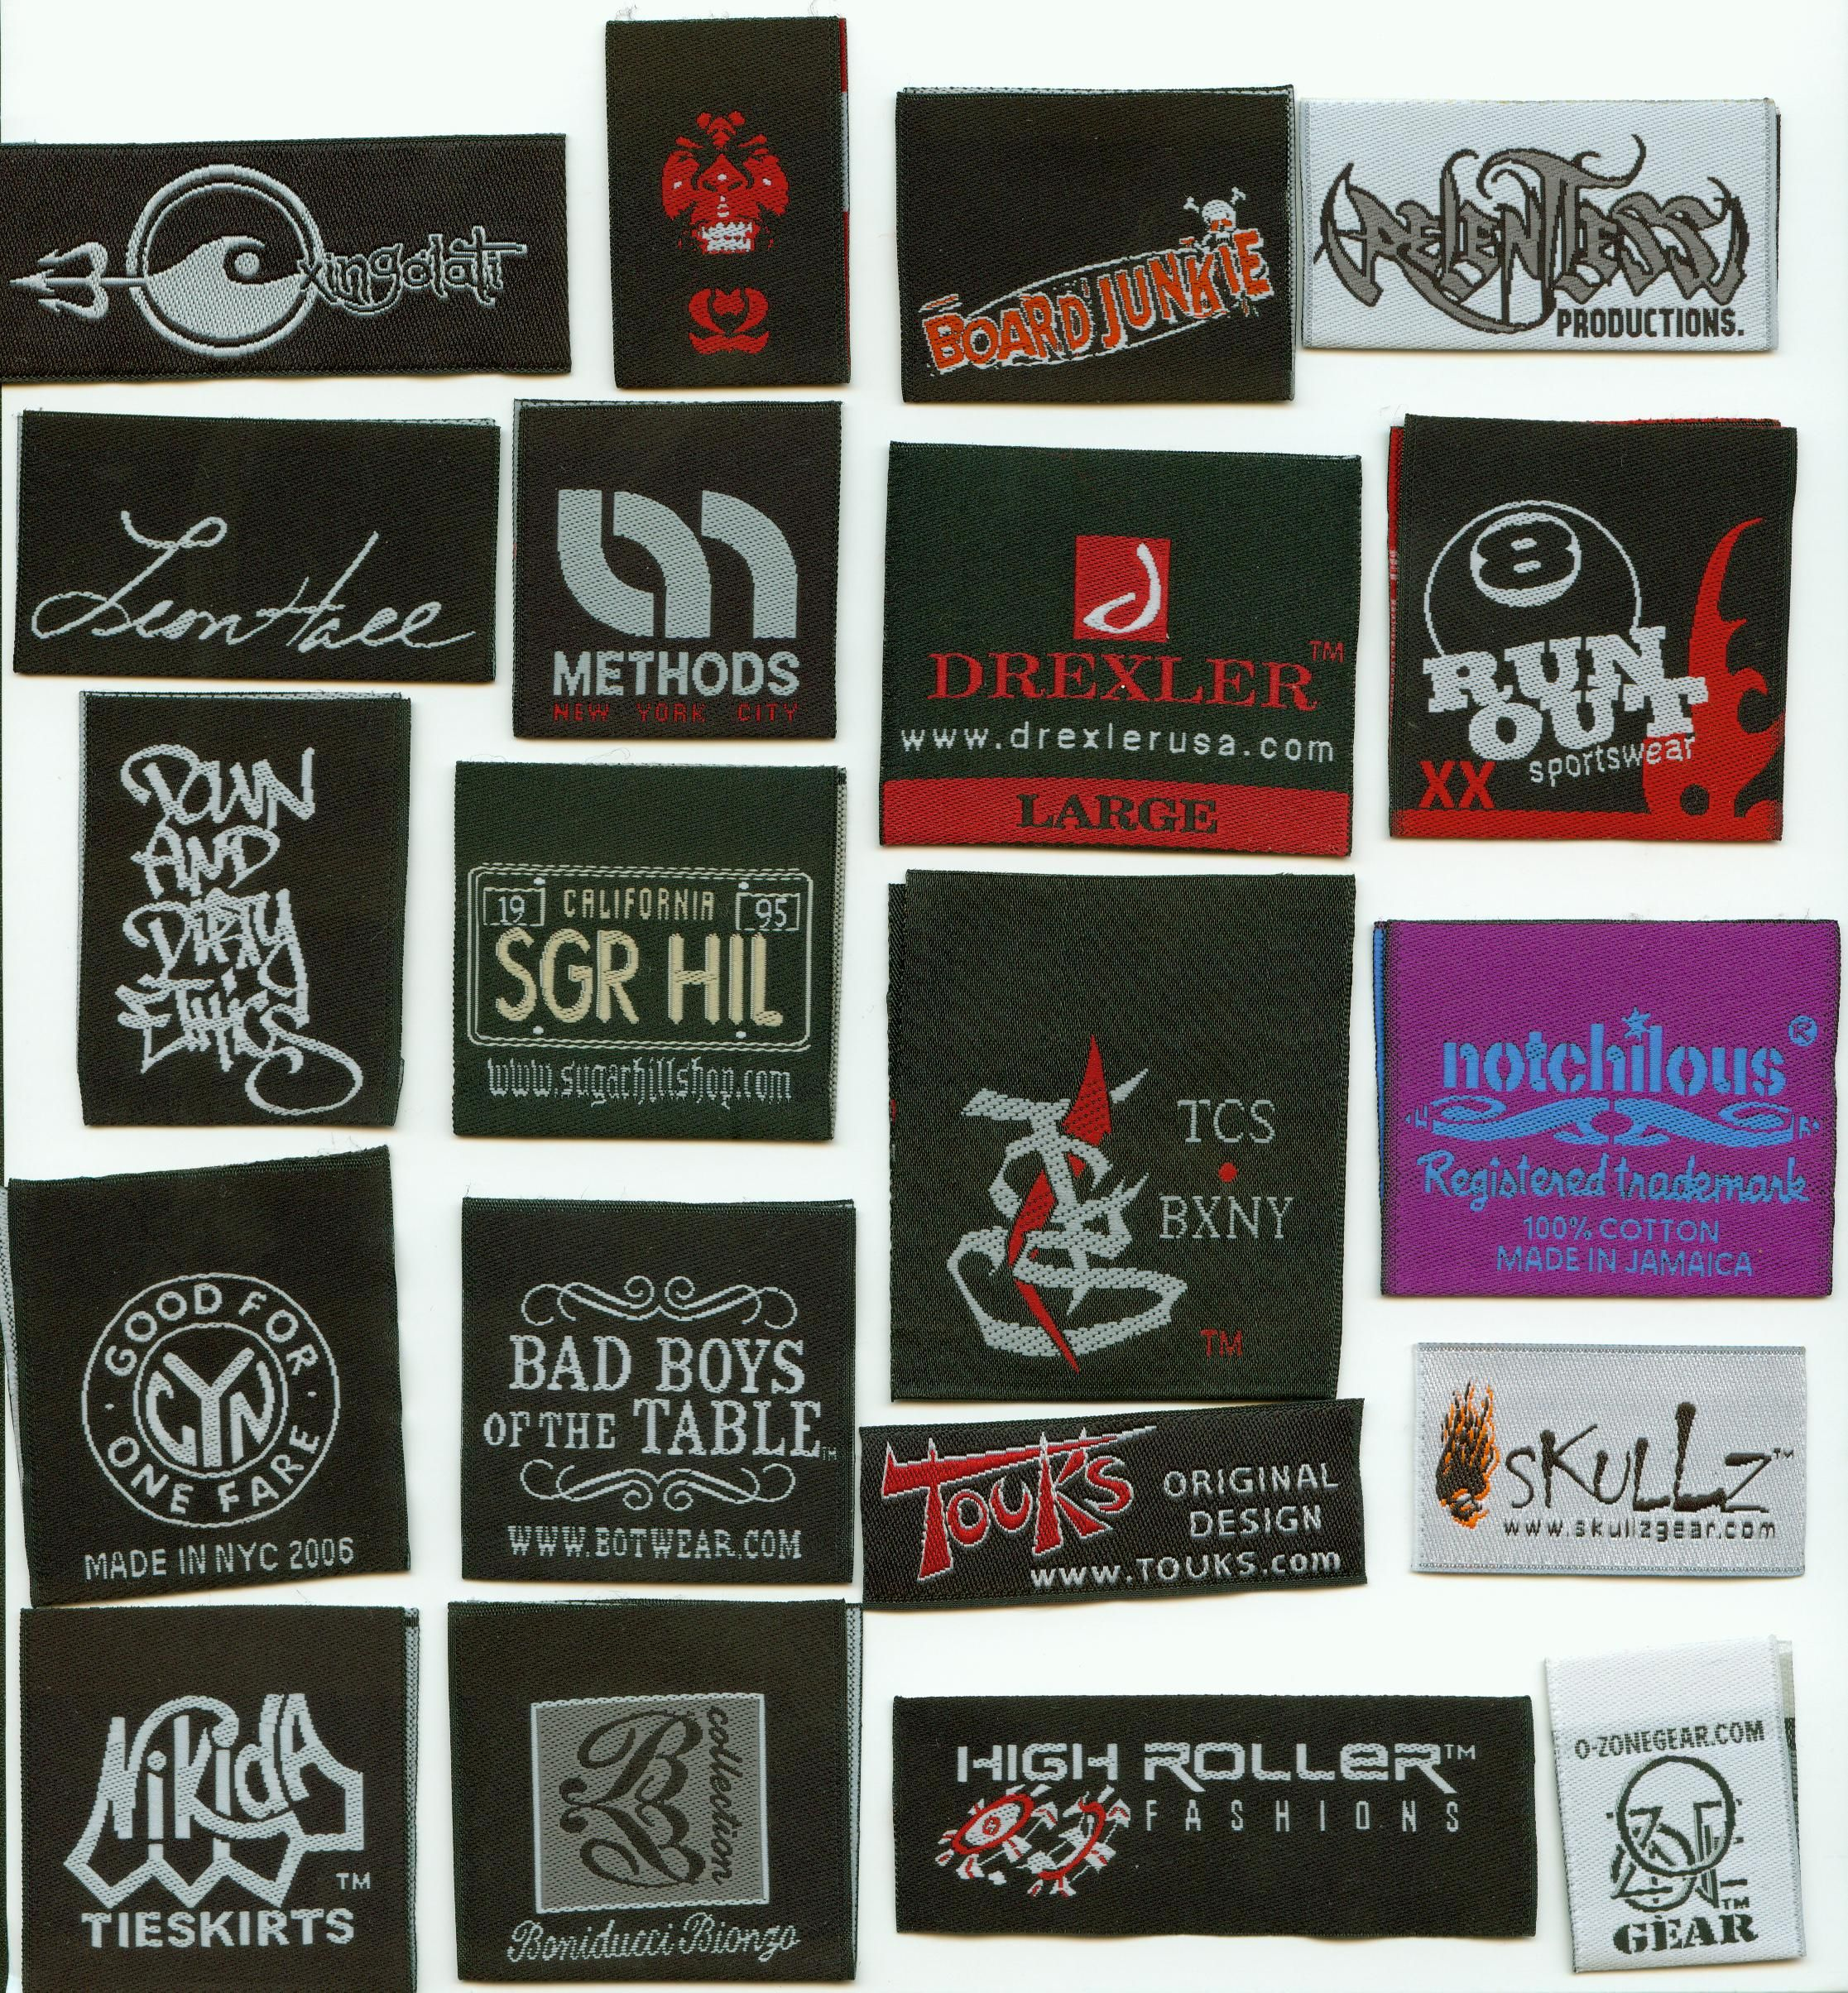 The Different Types Of Labels Manufactured By The Clothing